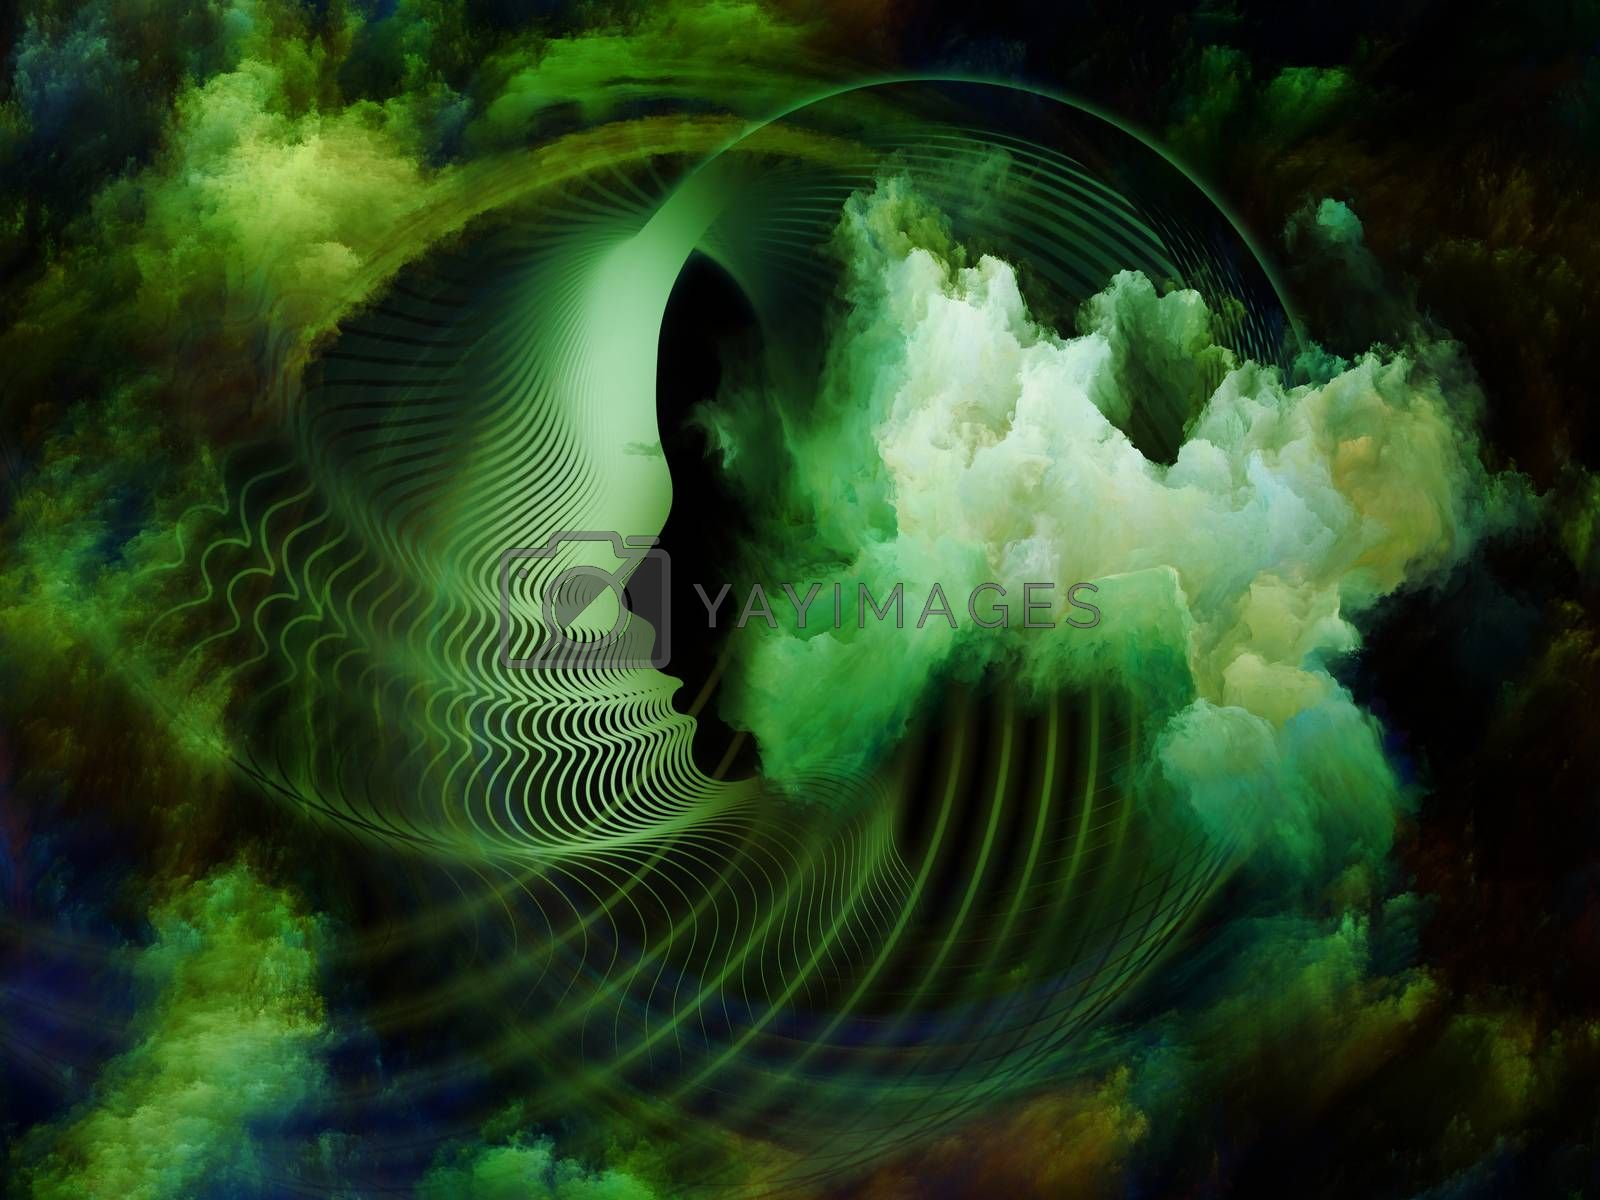 Internal Recurrence series. Abstract design made of human profile and fractal forms on the subject of inner reality, mental health, imagination, thinking and dreaming